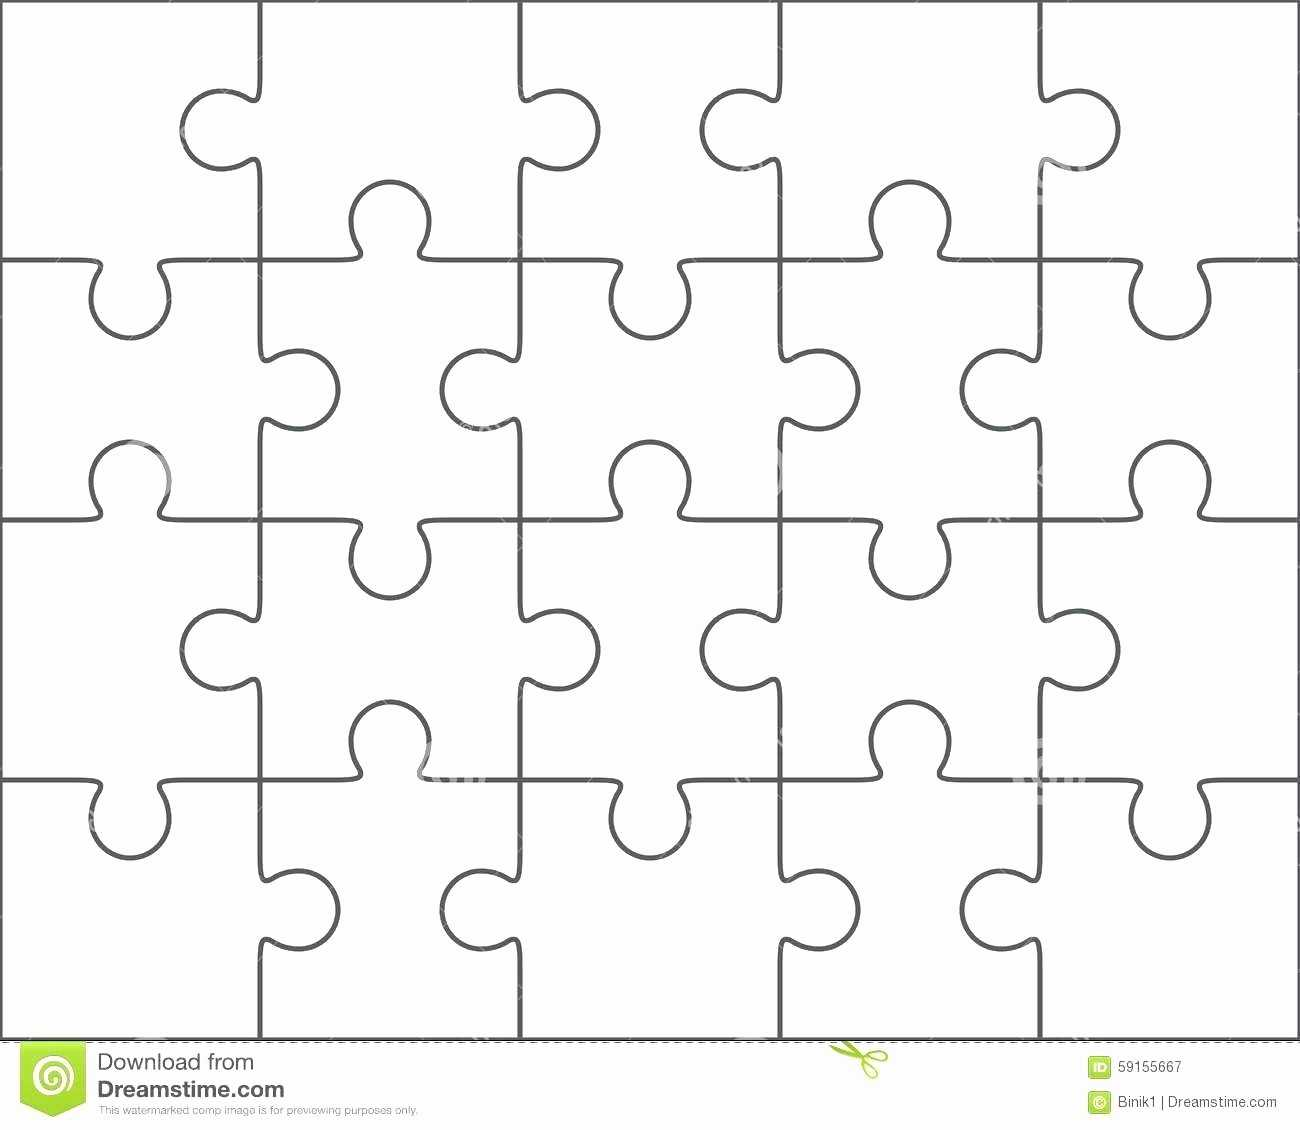 030 Puzzle Pieces Template For Word Best Of Piece Intended Pertaining To Jigsaw Puzzle Template For Word